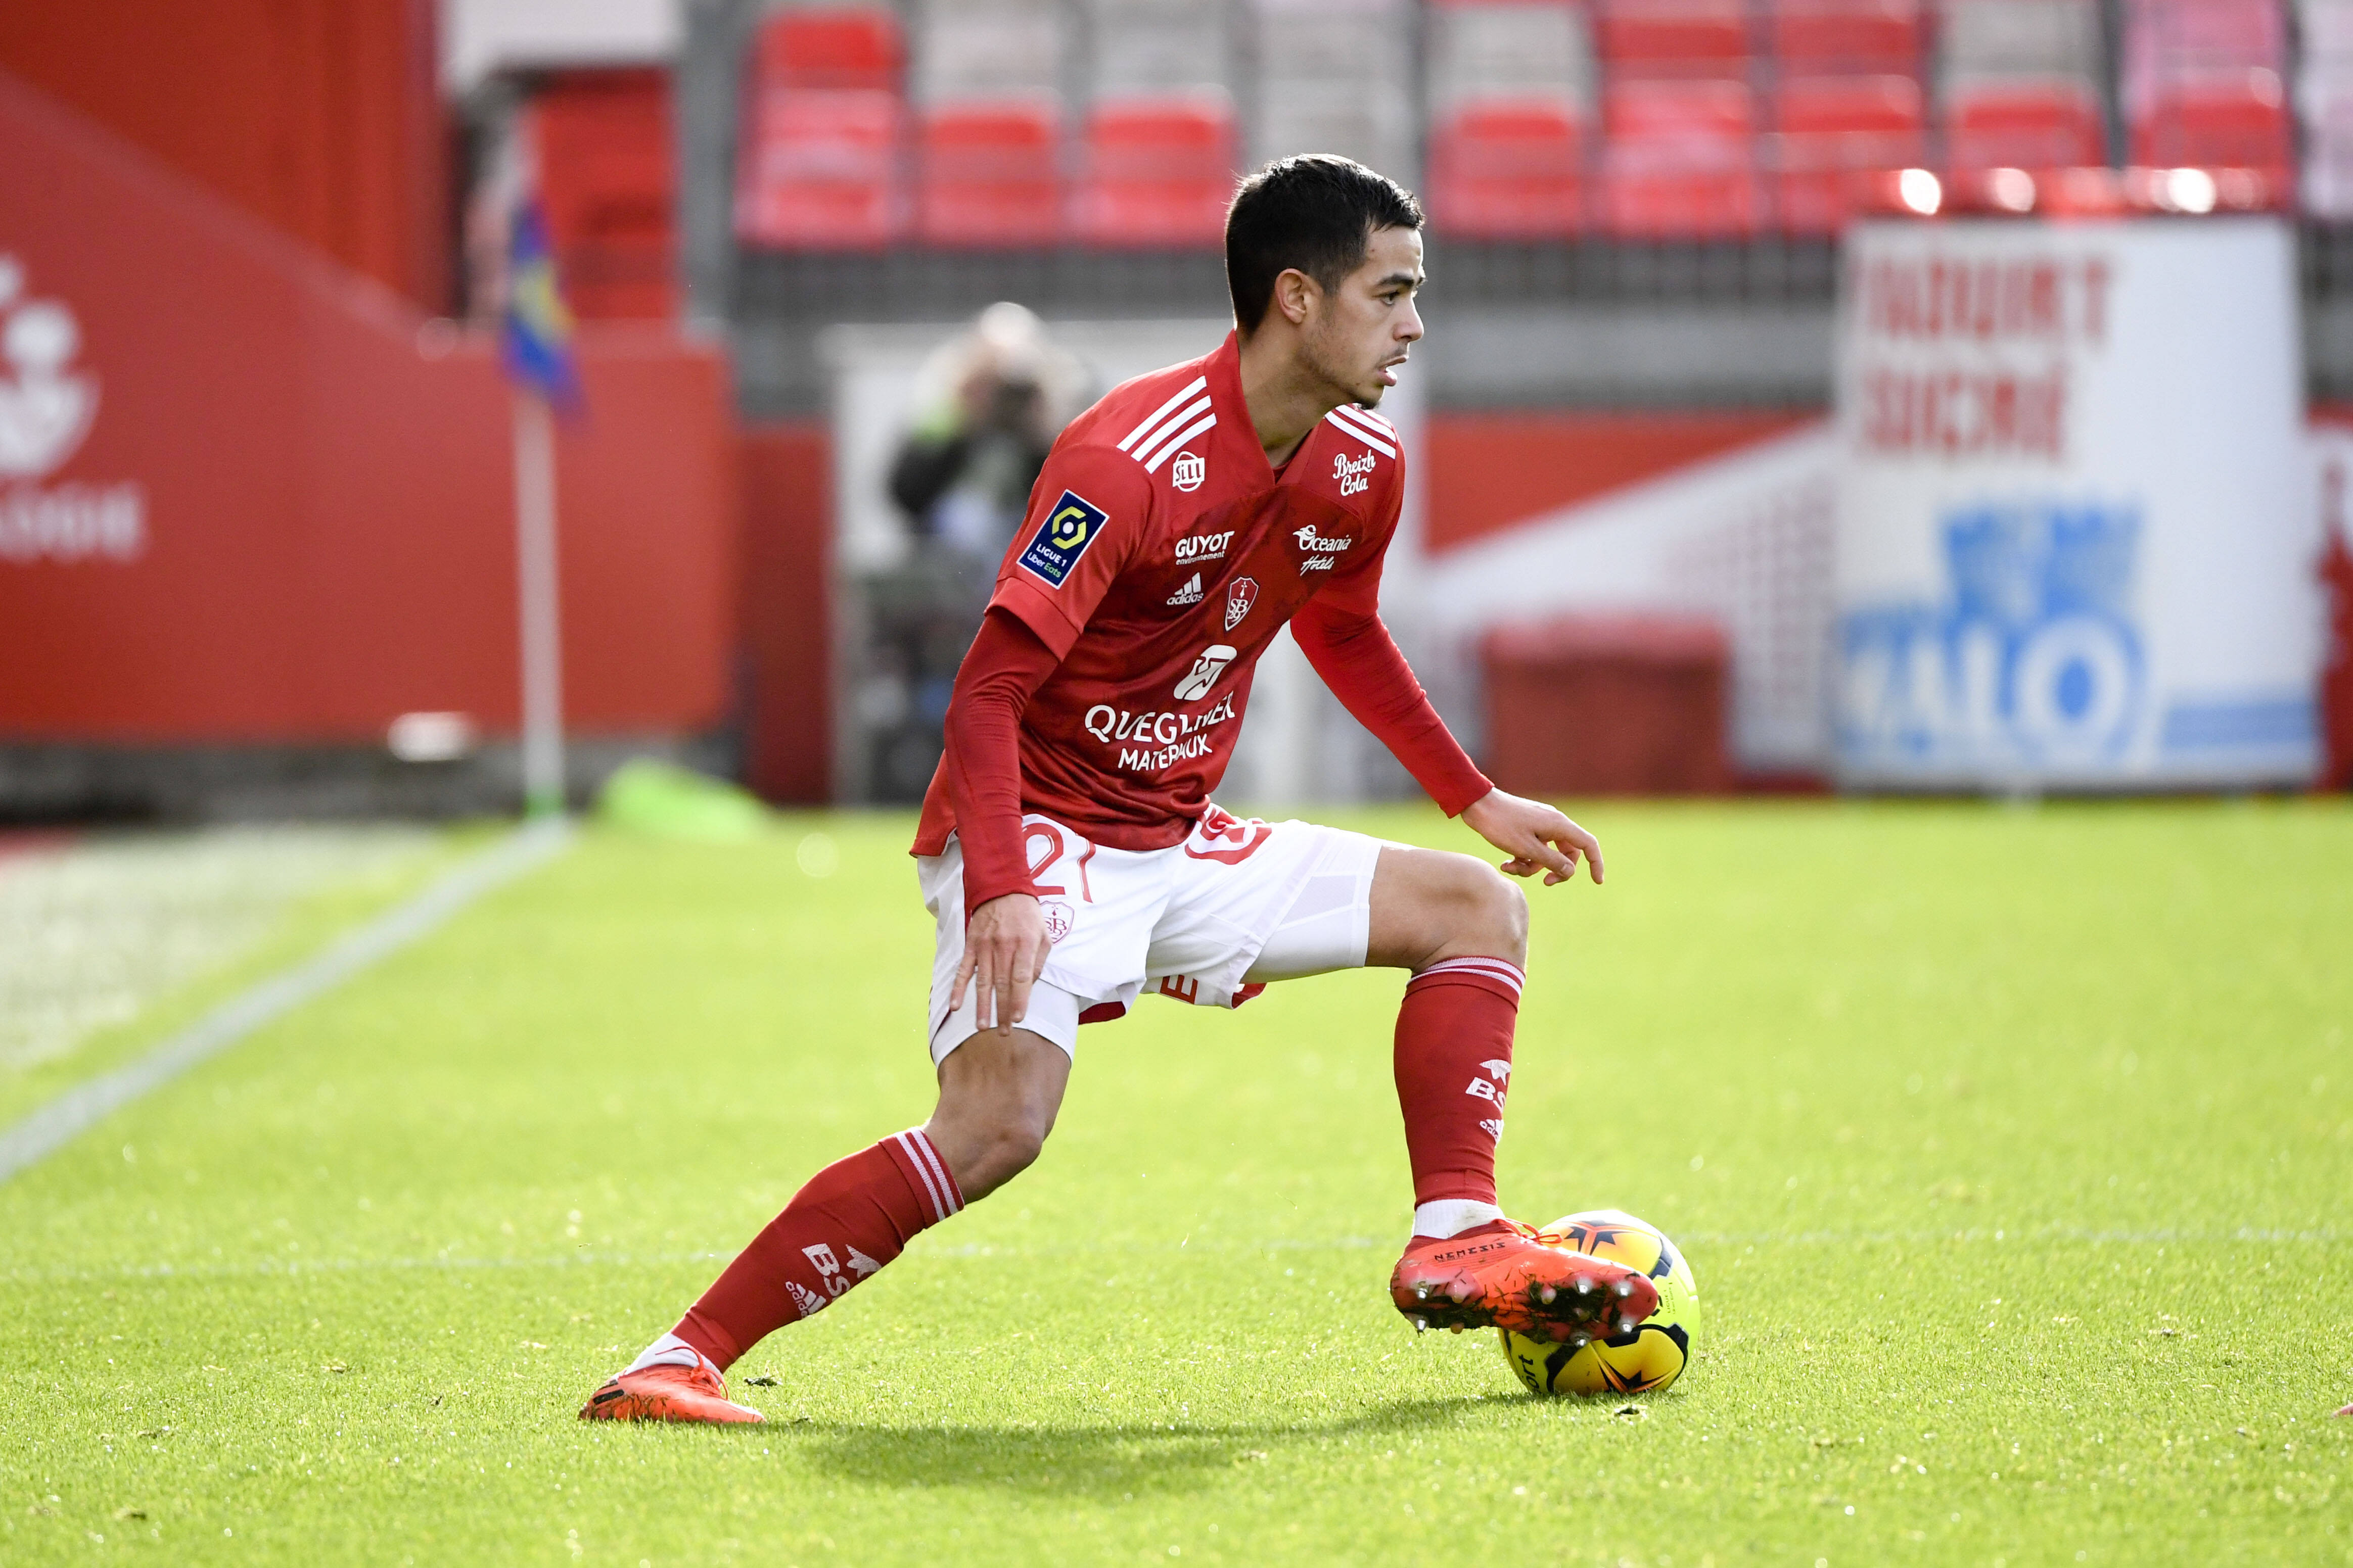 Romain Faivre Is On Manchester United's Radar (Romain Faivre can be seen in the picture)